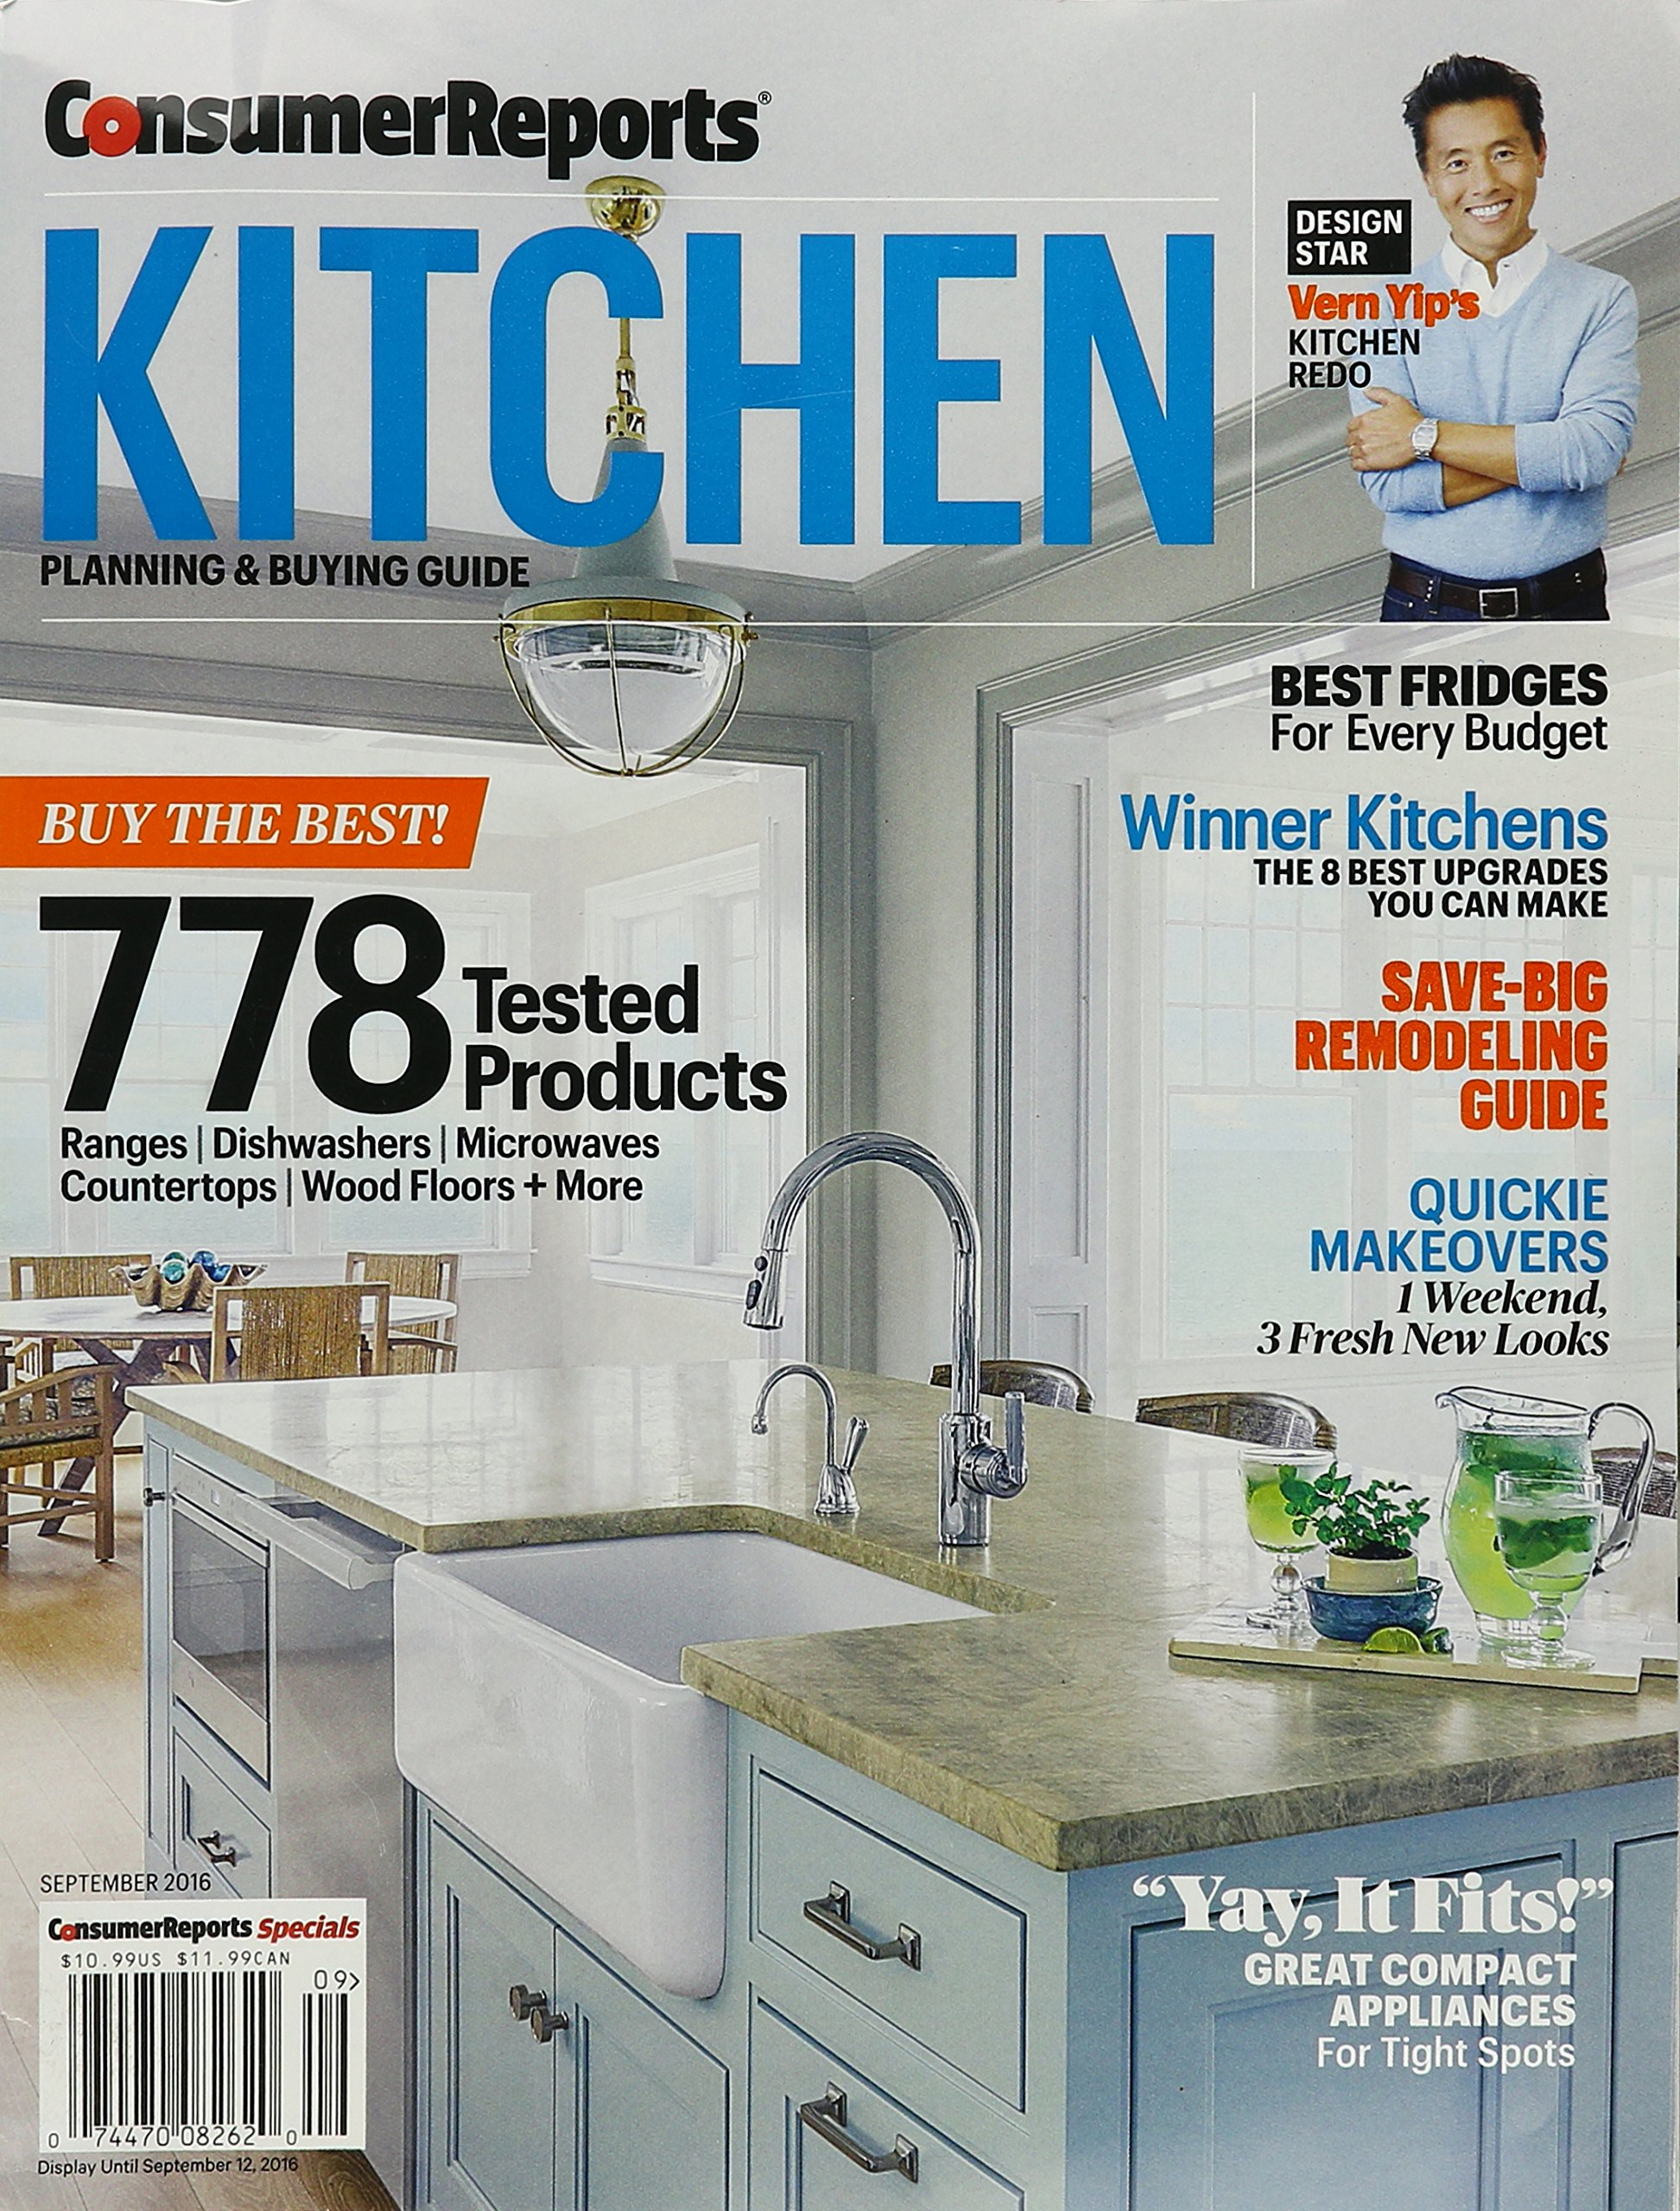 consumer reports kitchen planning and buying guide september 2016 consumer reports kitchen planning and buying guide september 2016 b 9783598593062 amazon com books